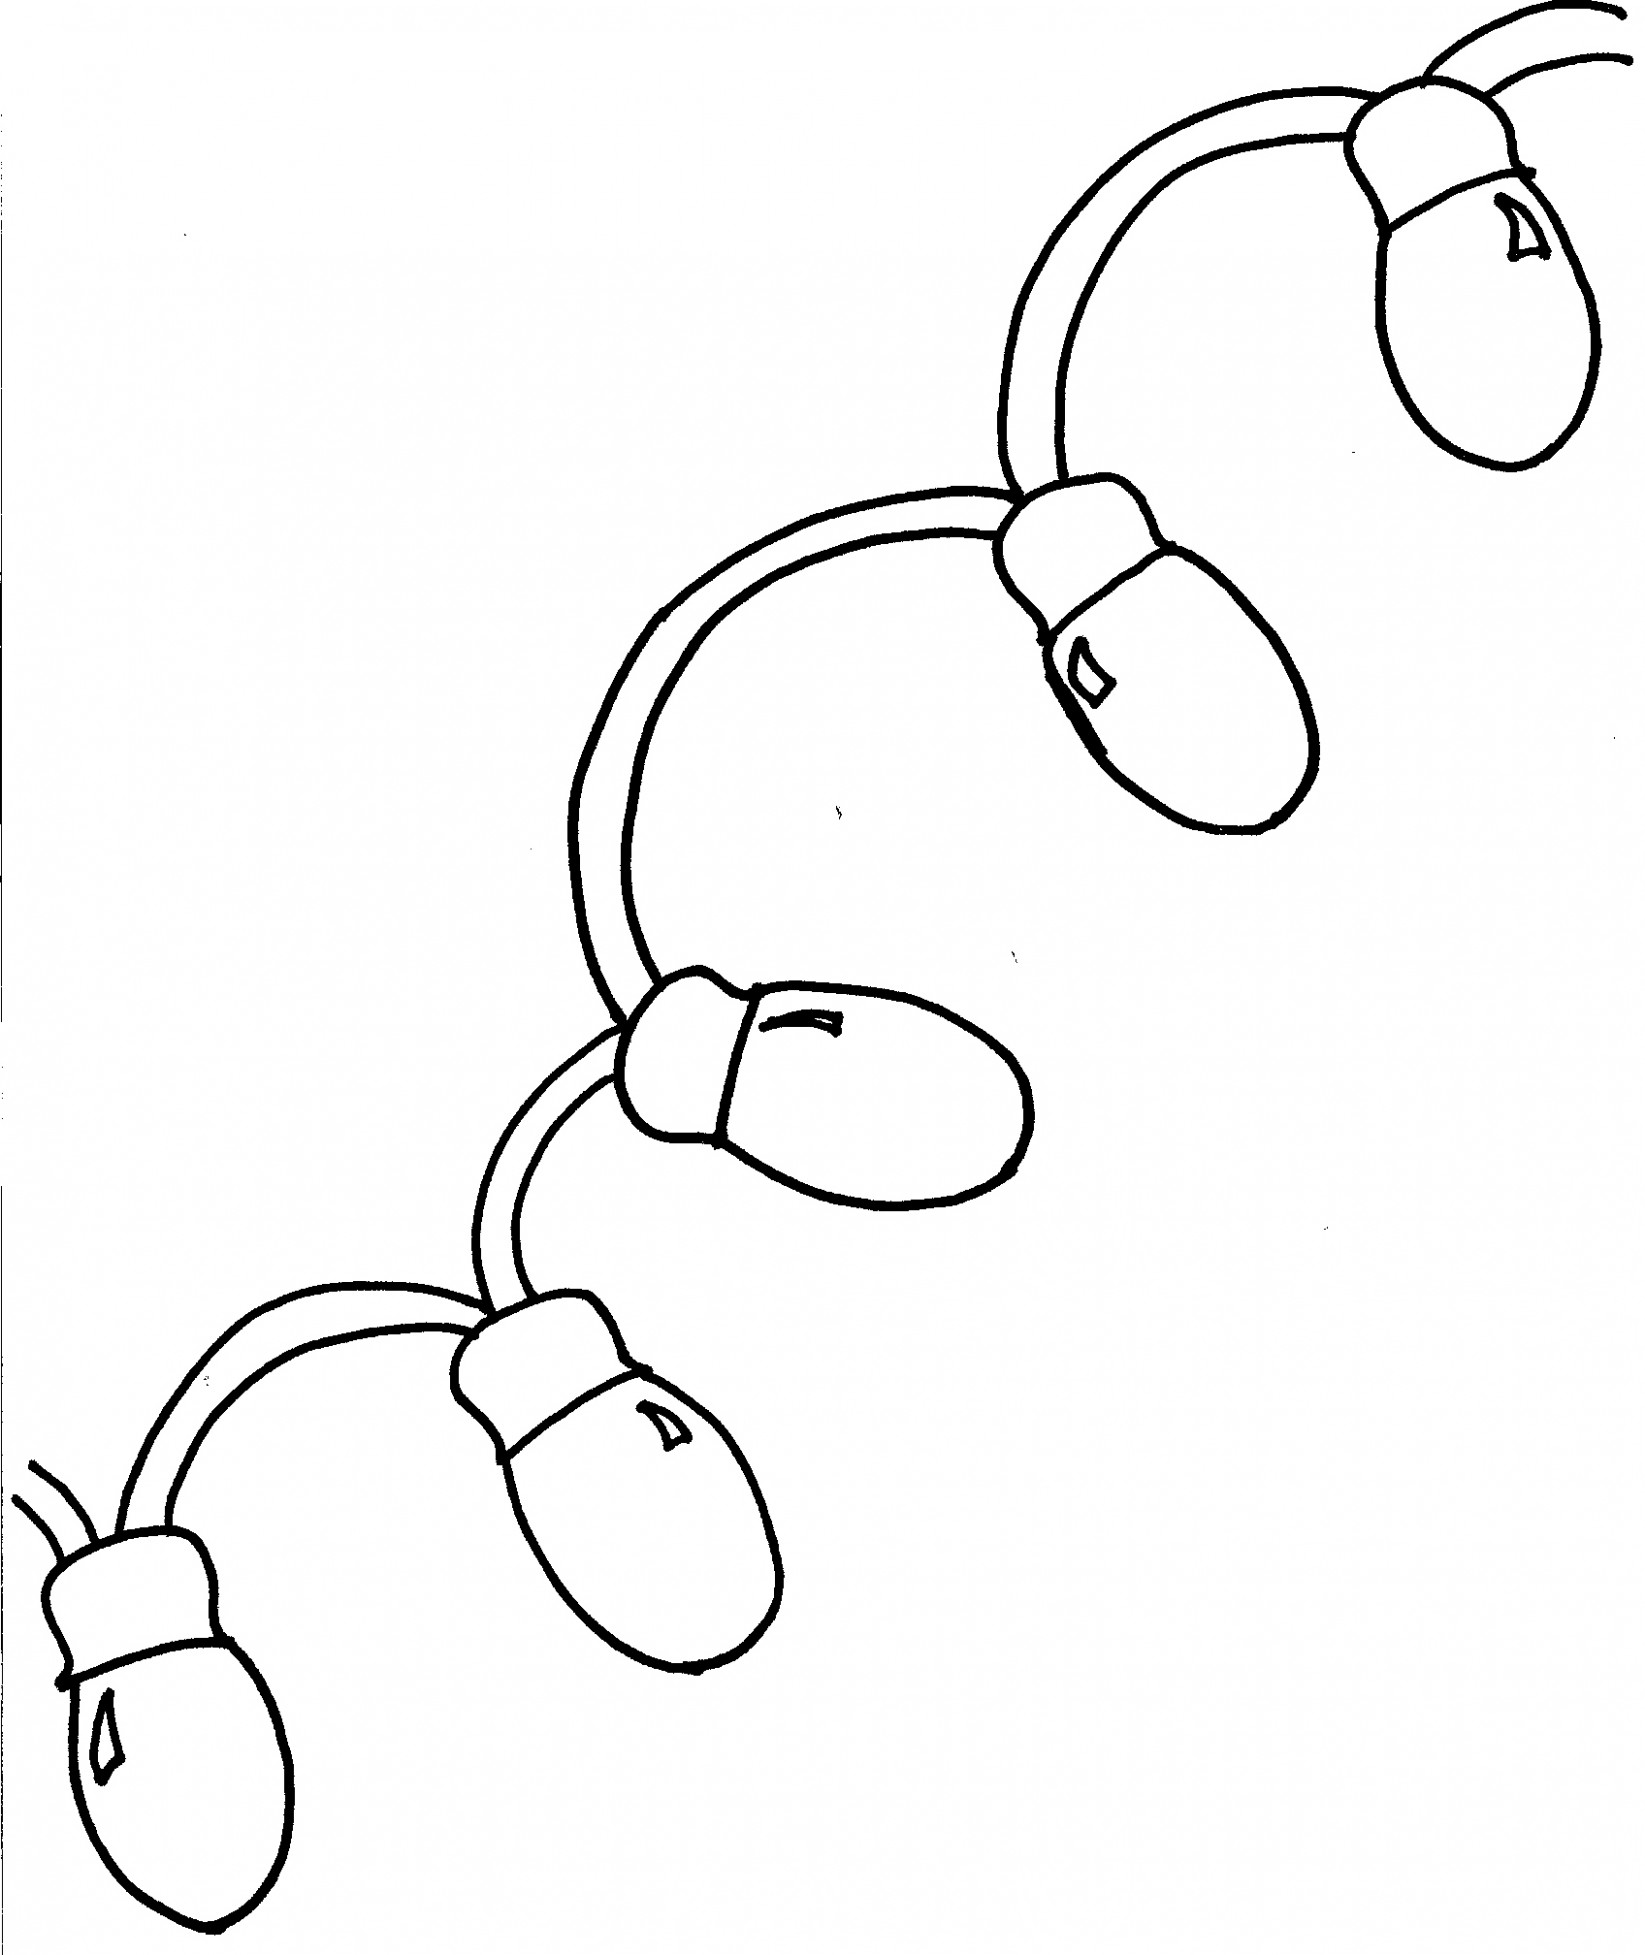 Christmas lights coloring pages – Coloring pages for kids – Christmas Lights Coloring Pages Printable